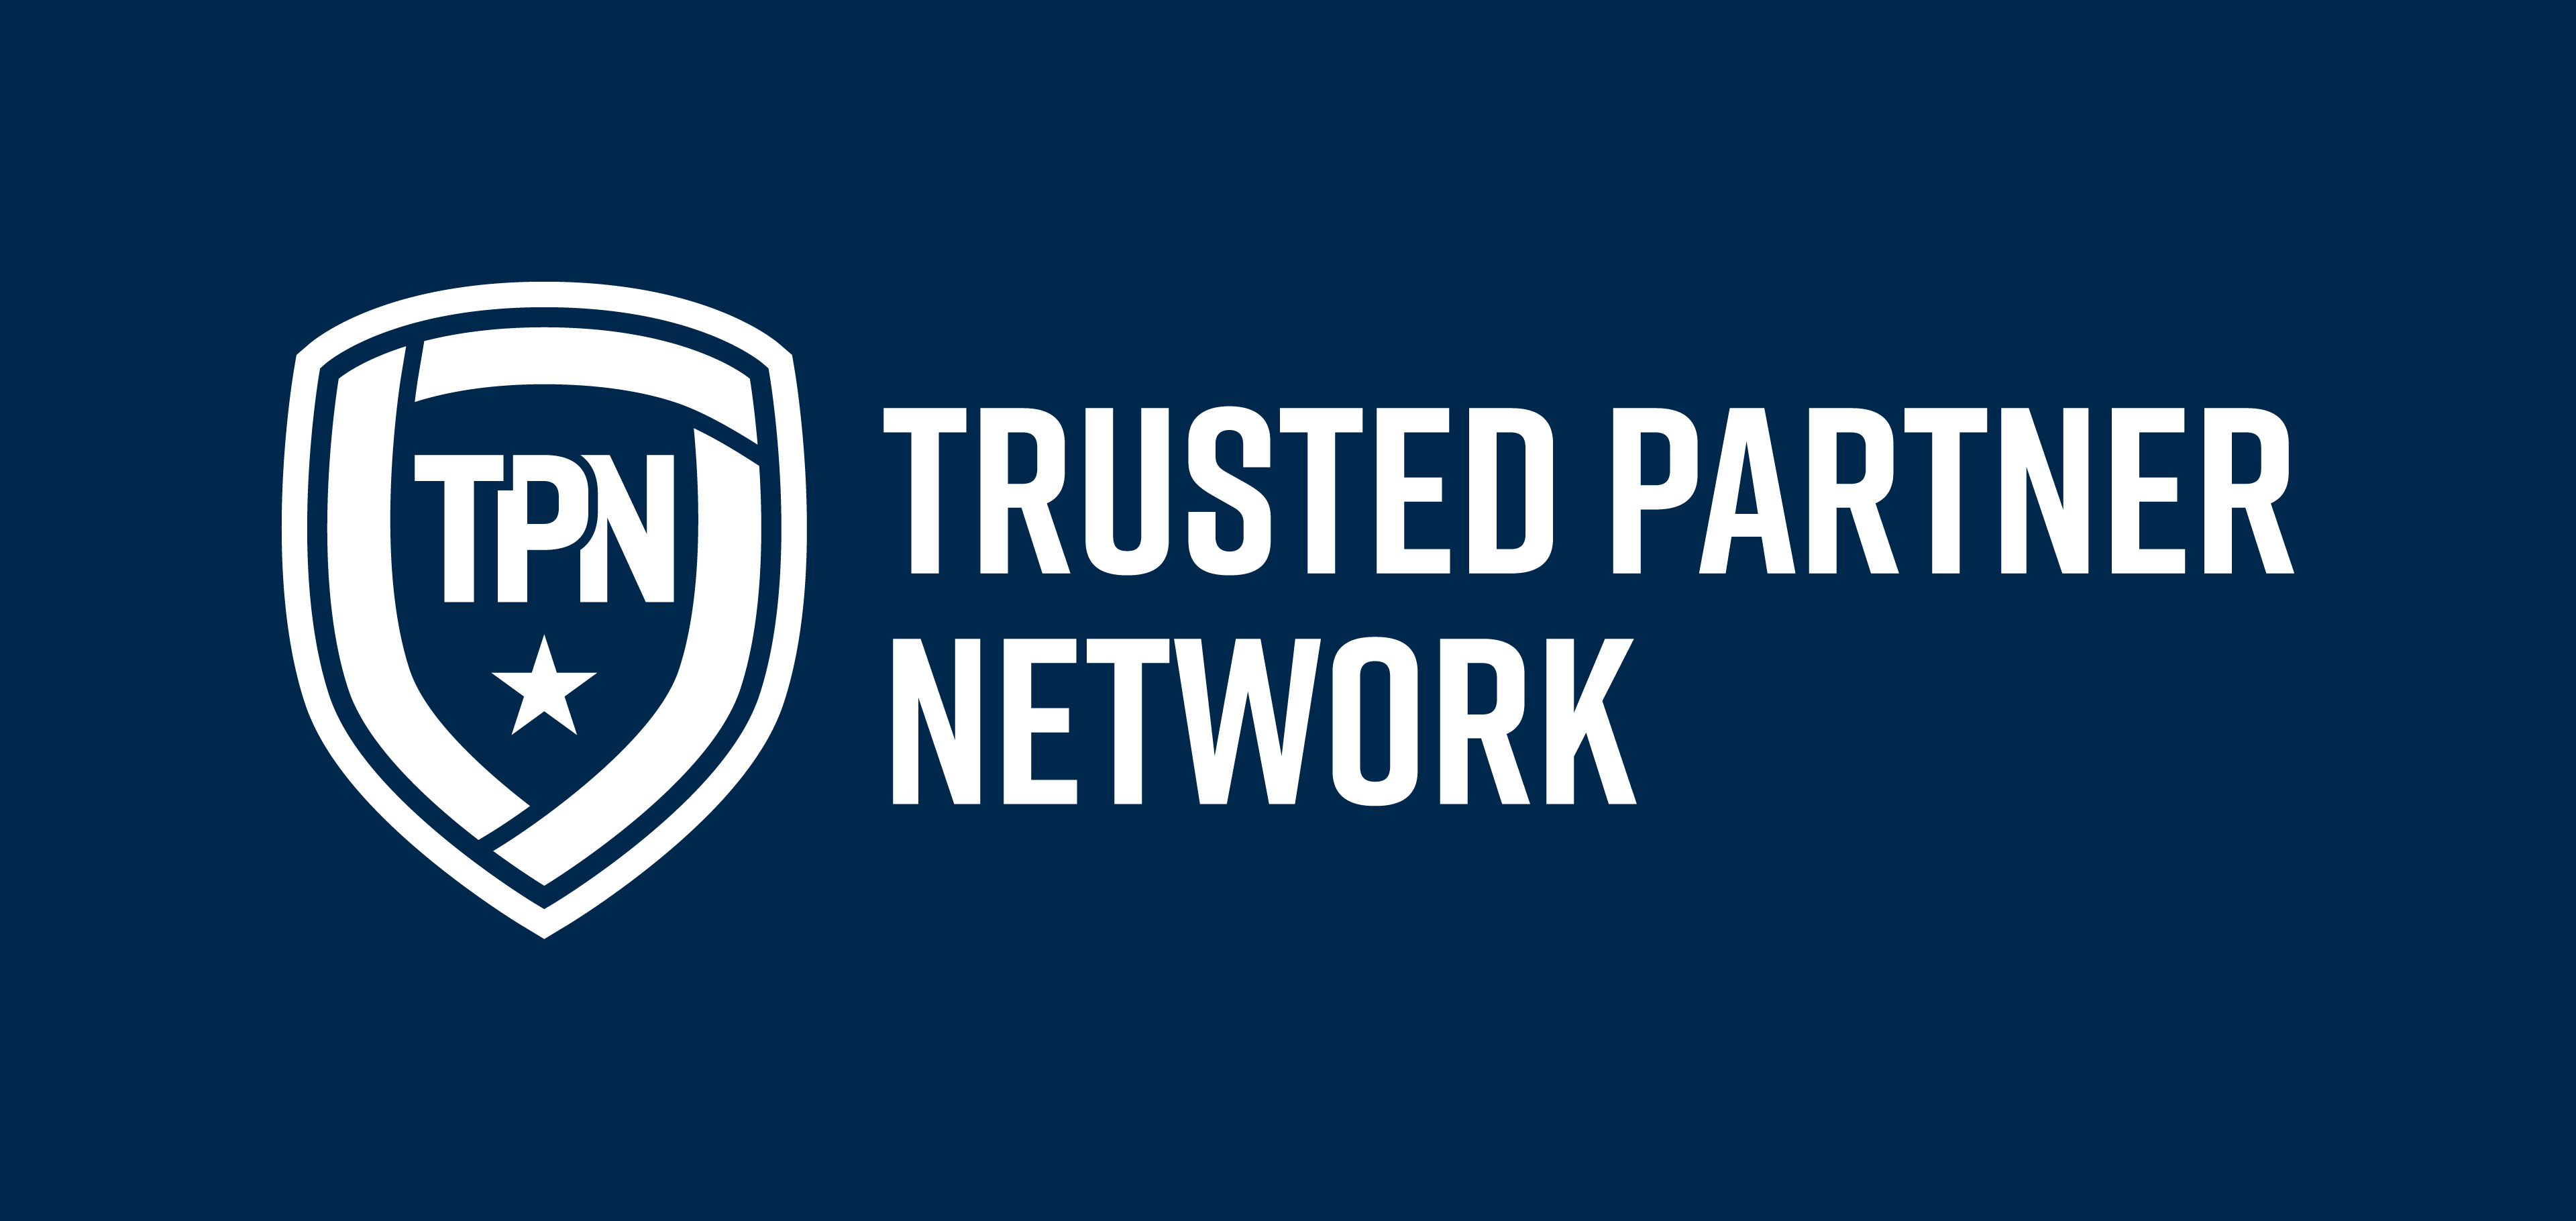 Trusted Partner Network